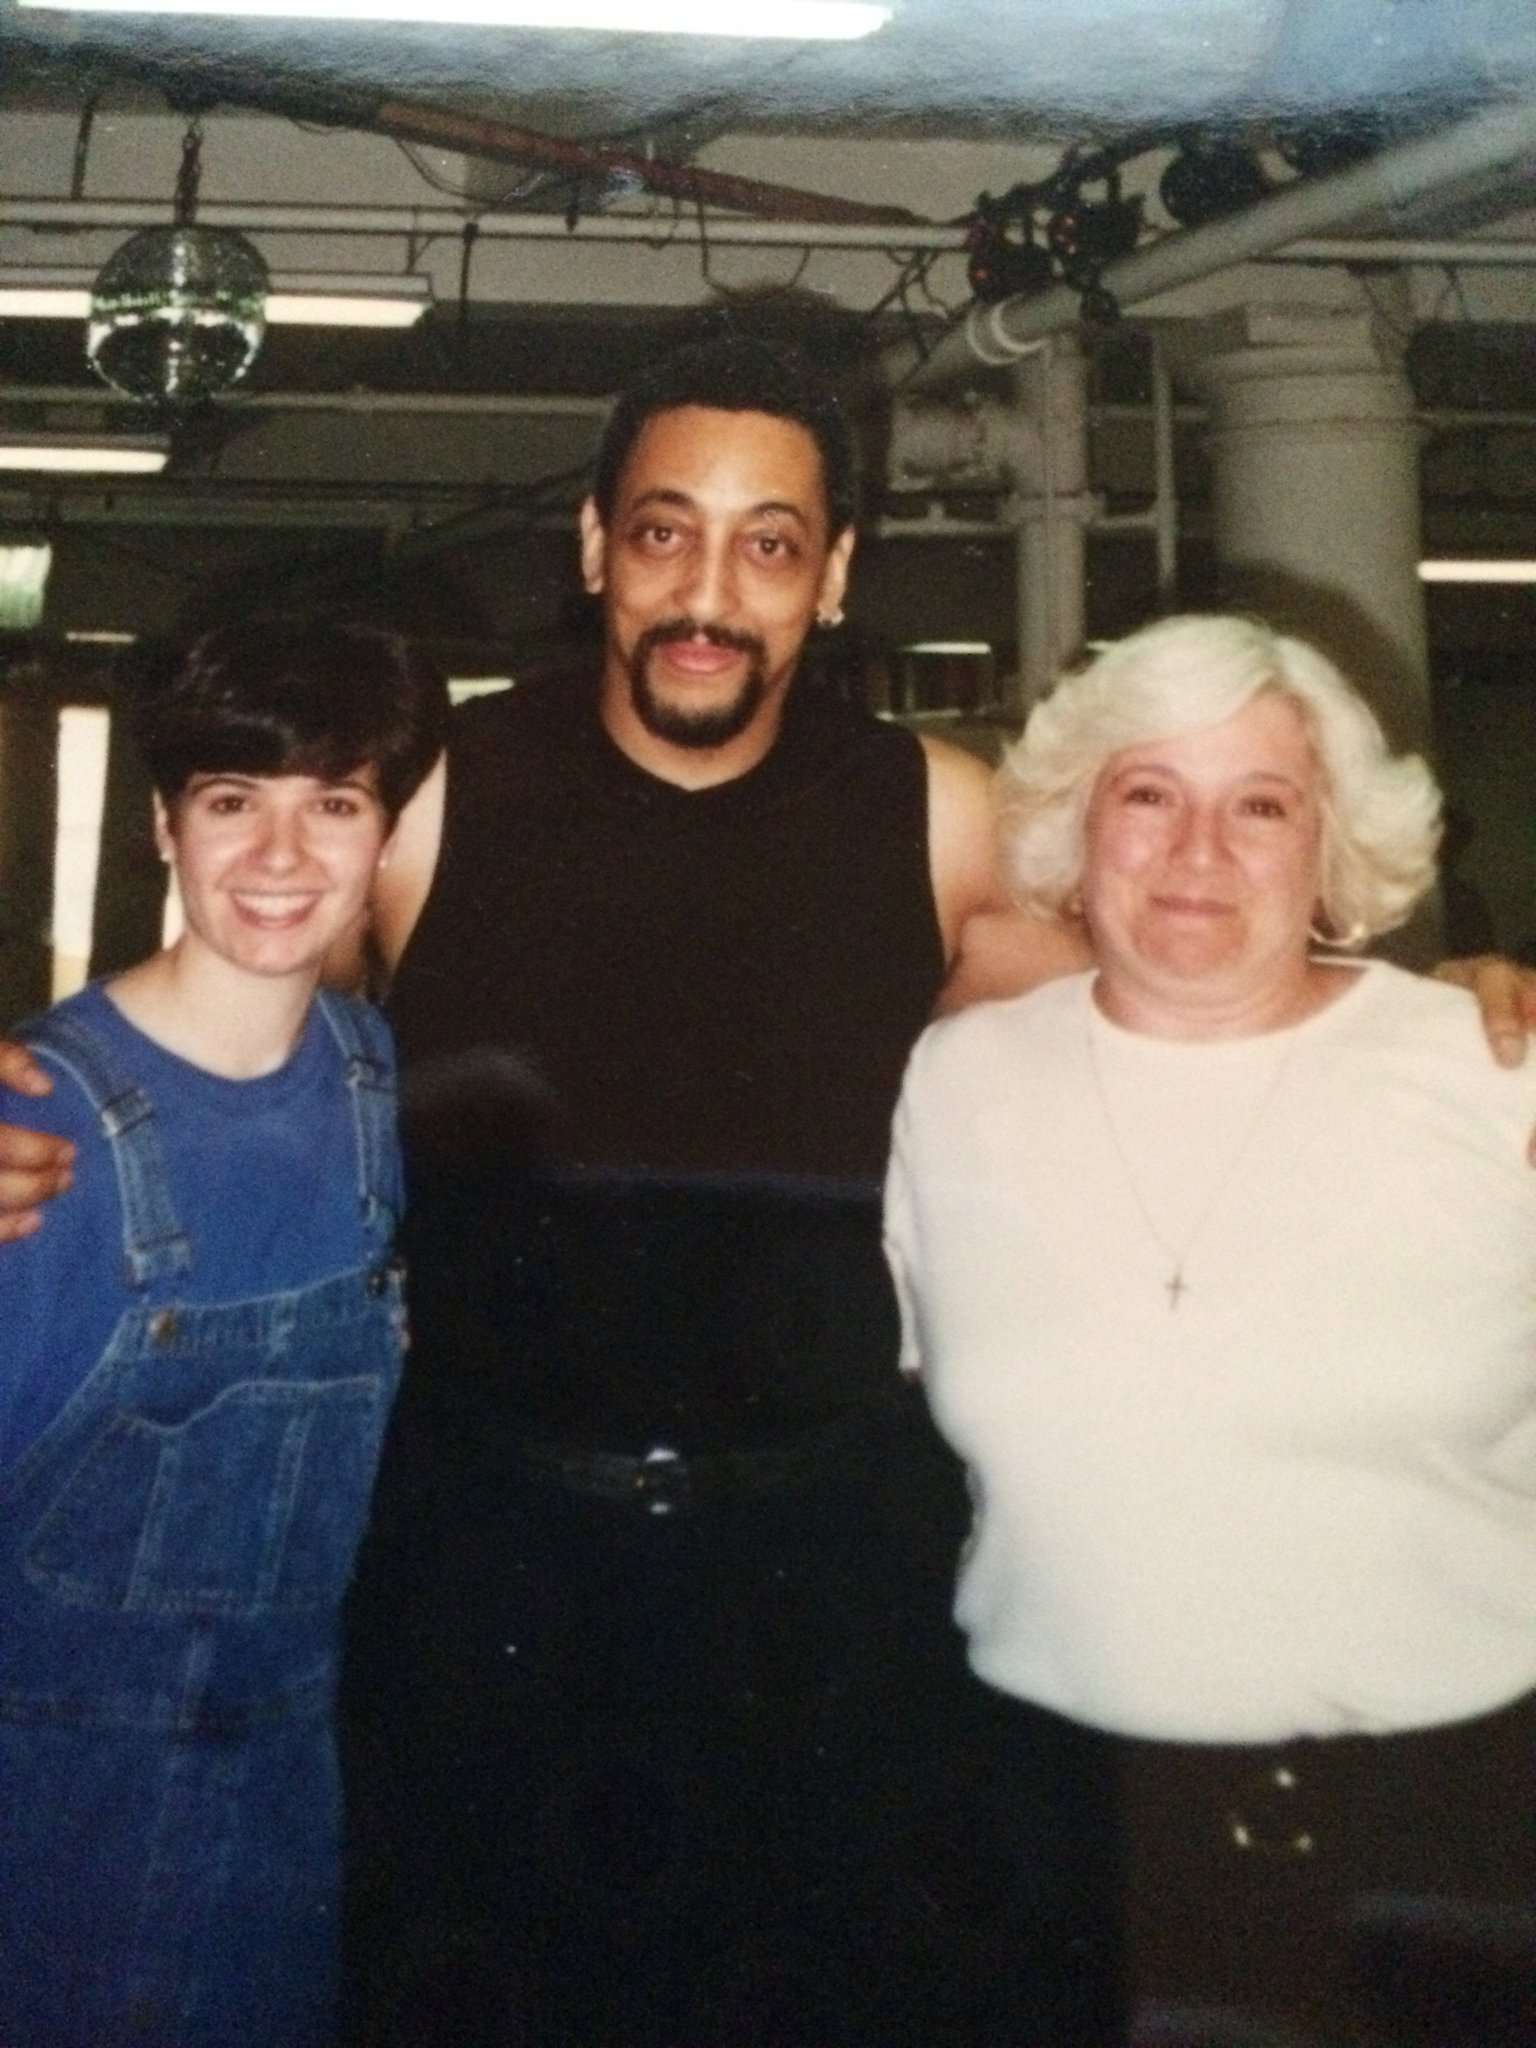 Throwback - my mother & I circa 1998 Happy Birthday Gregory Hines!